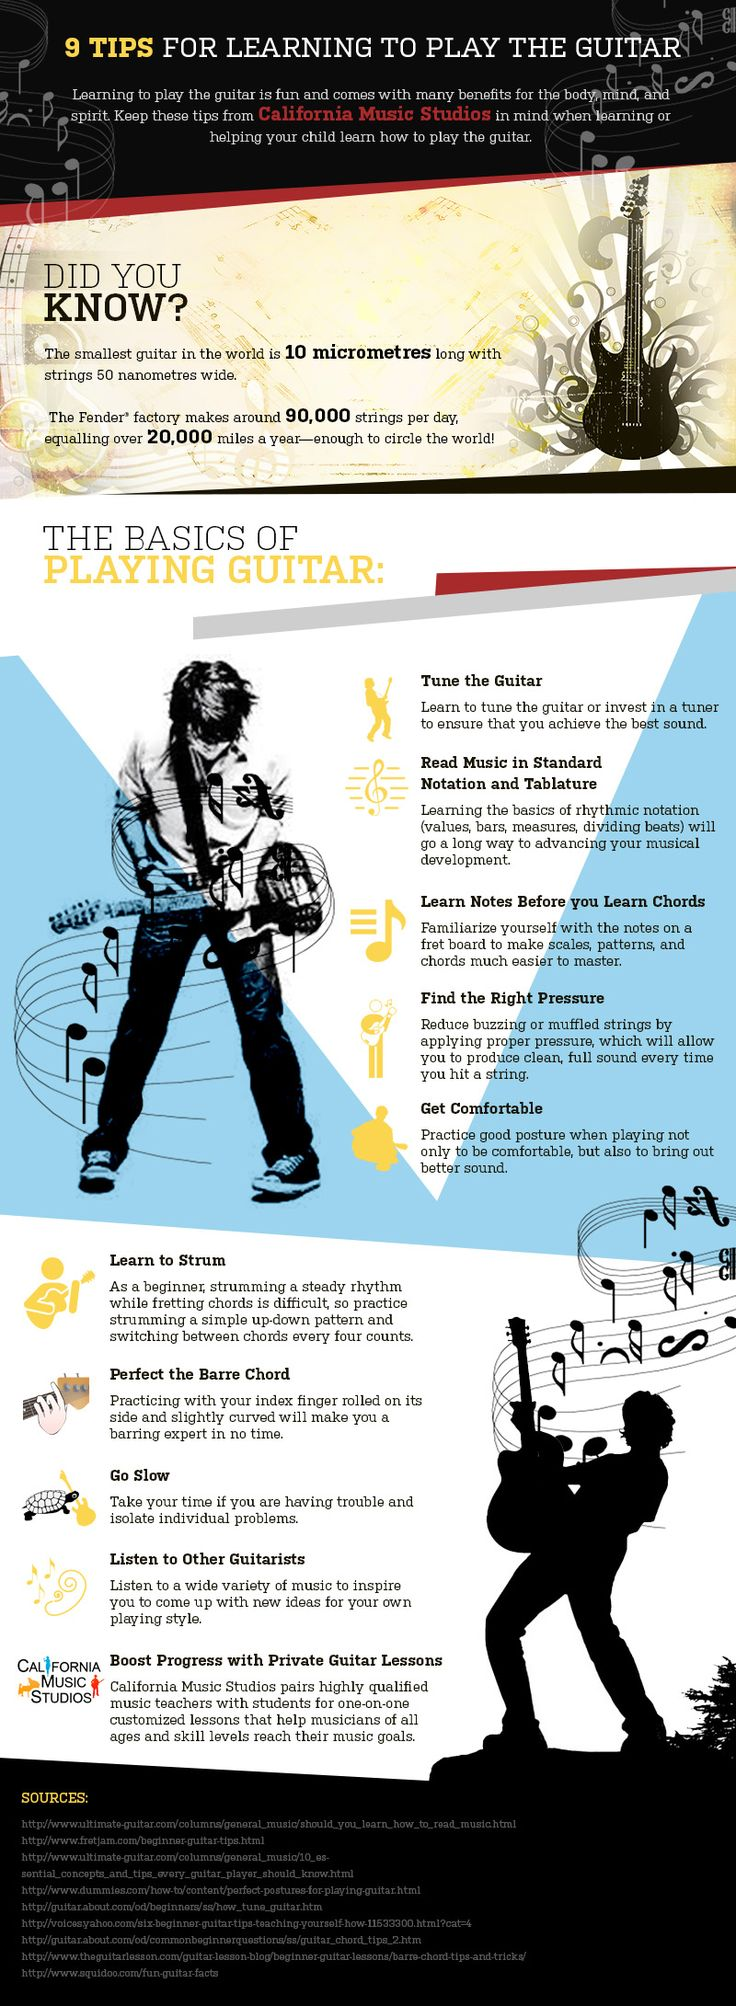 9 Tips For Learning To Play The Guitar (Infographic) Description: Successfully learning how to play the guitar is within your grasp. These 9 tips are a great starting point for those who want to learn to play the guitar.